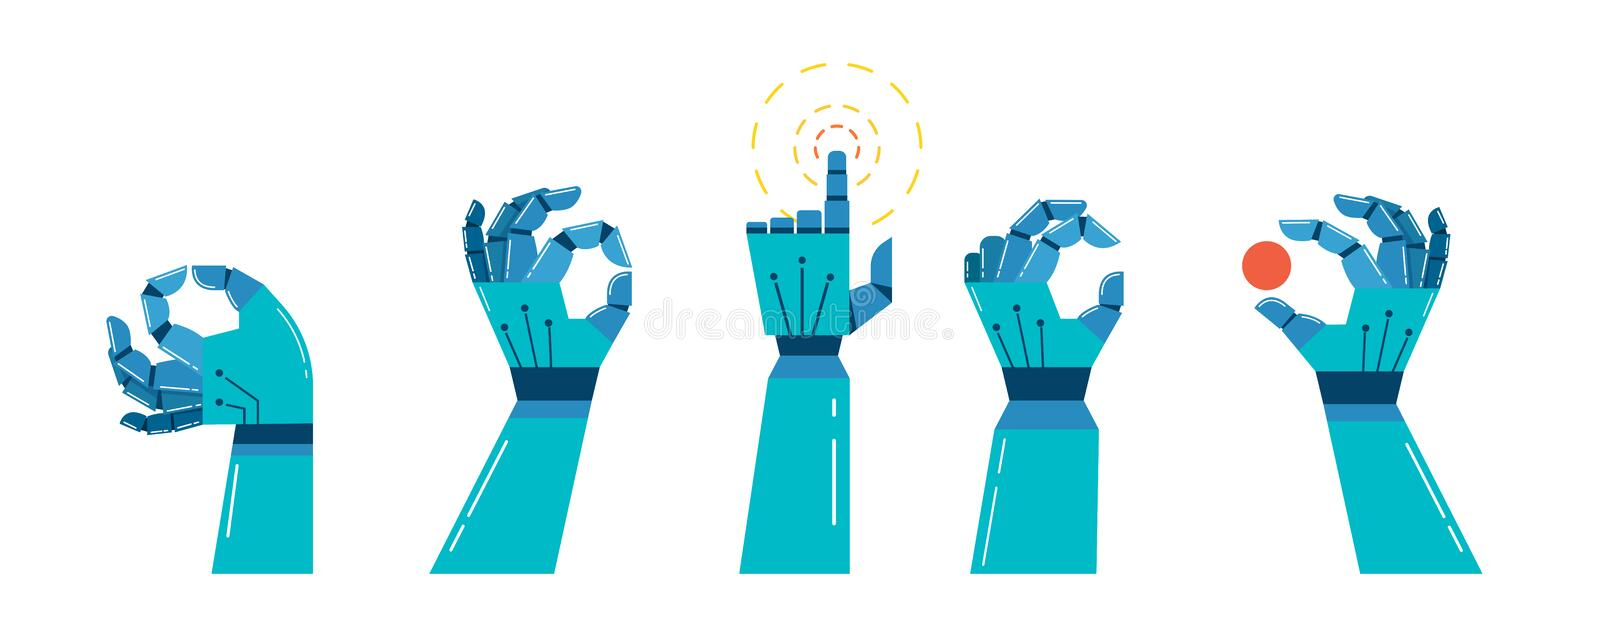 Robot and mechanic hands banner, concept design vector illustration